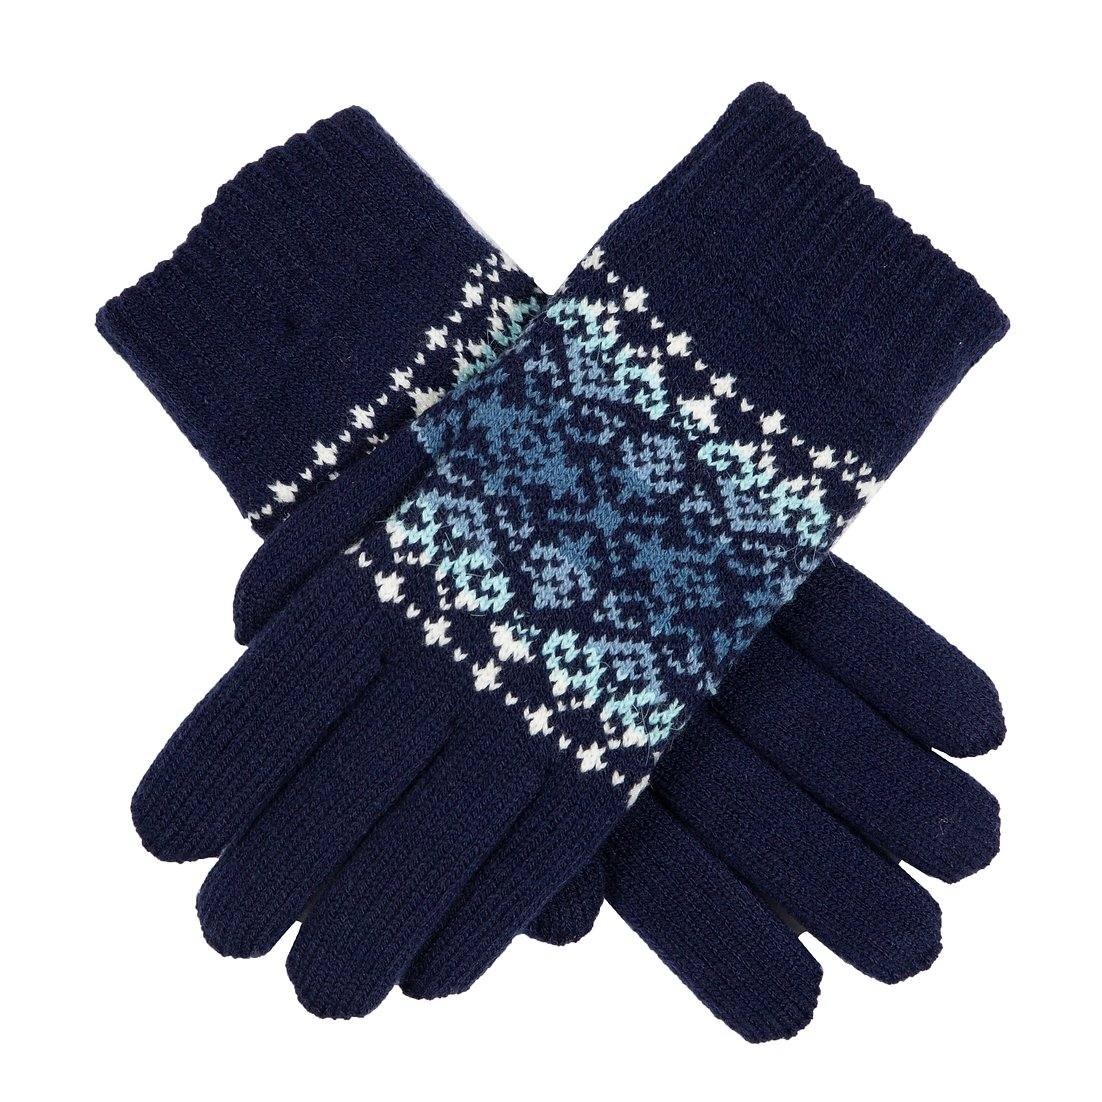 Dents knitted chenille lined gloves, navy